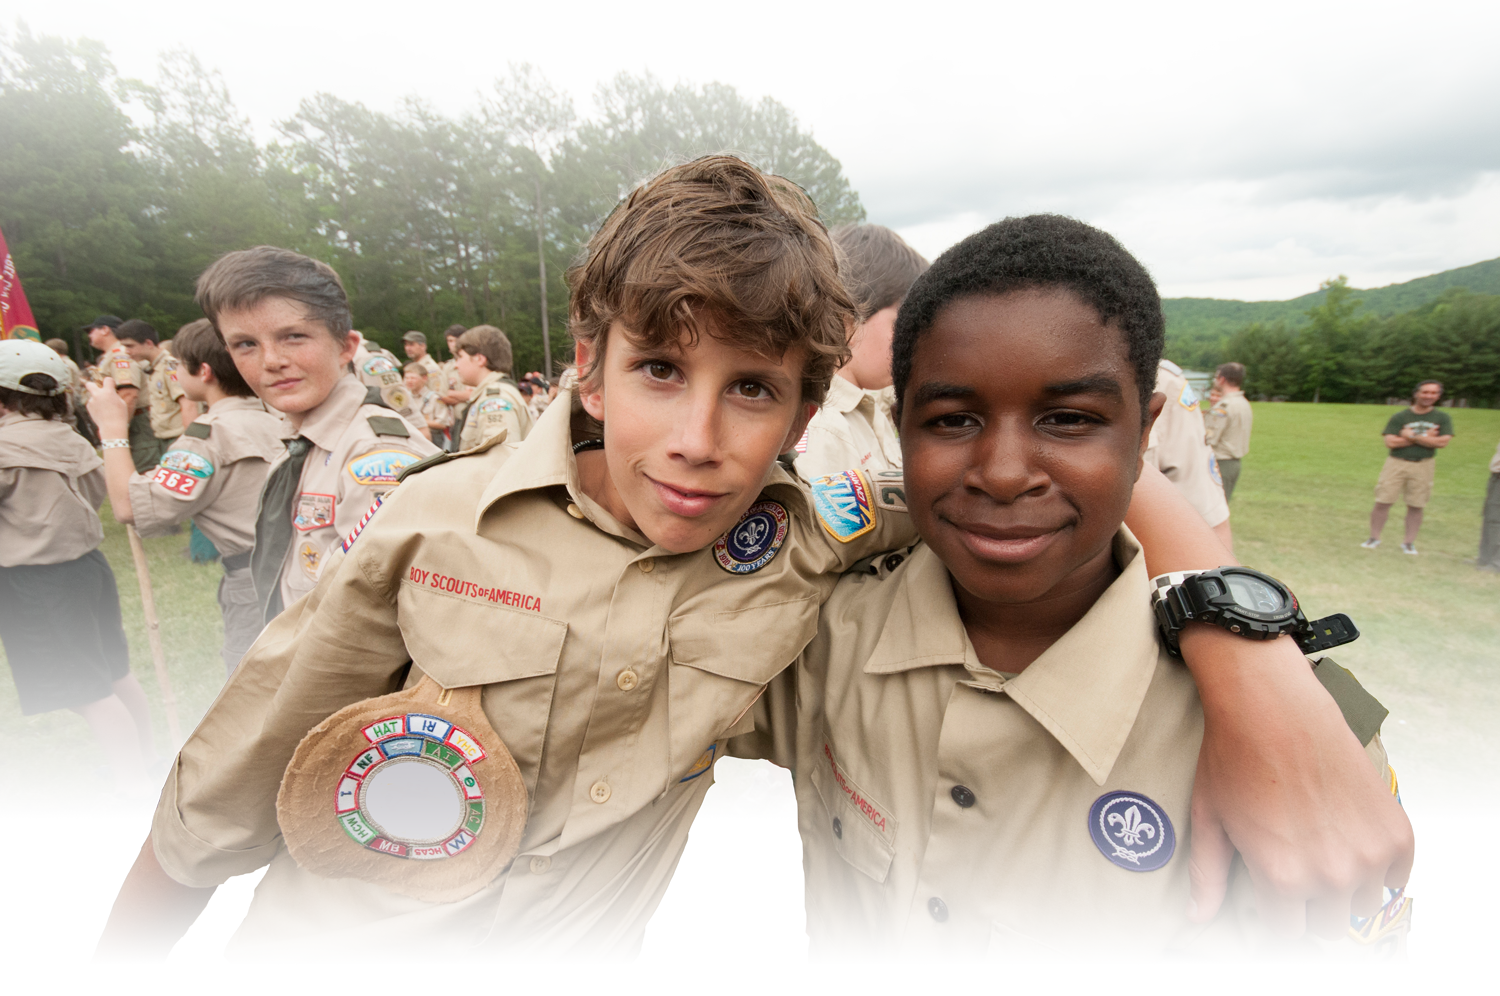 Two Boy Scouts